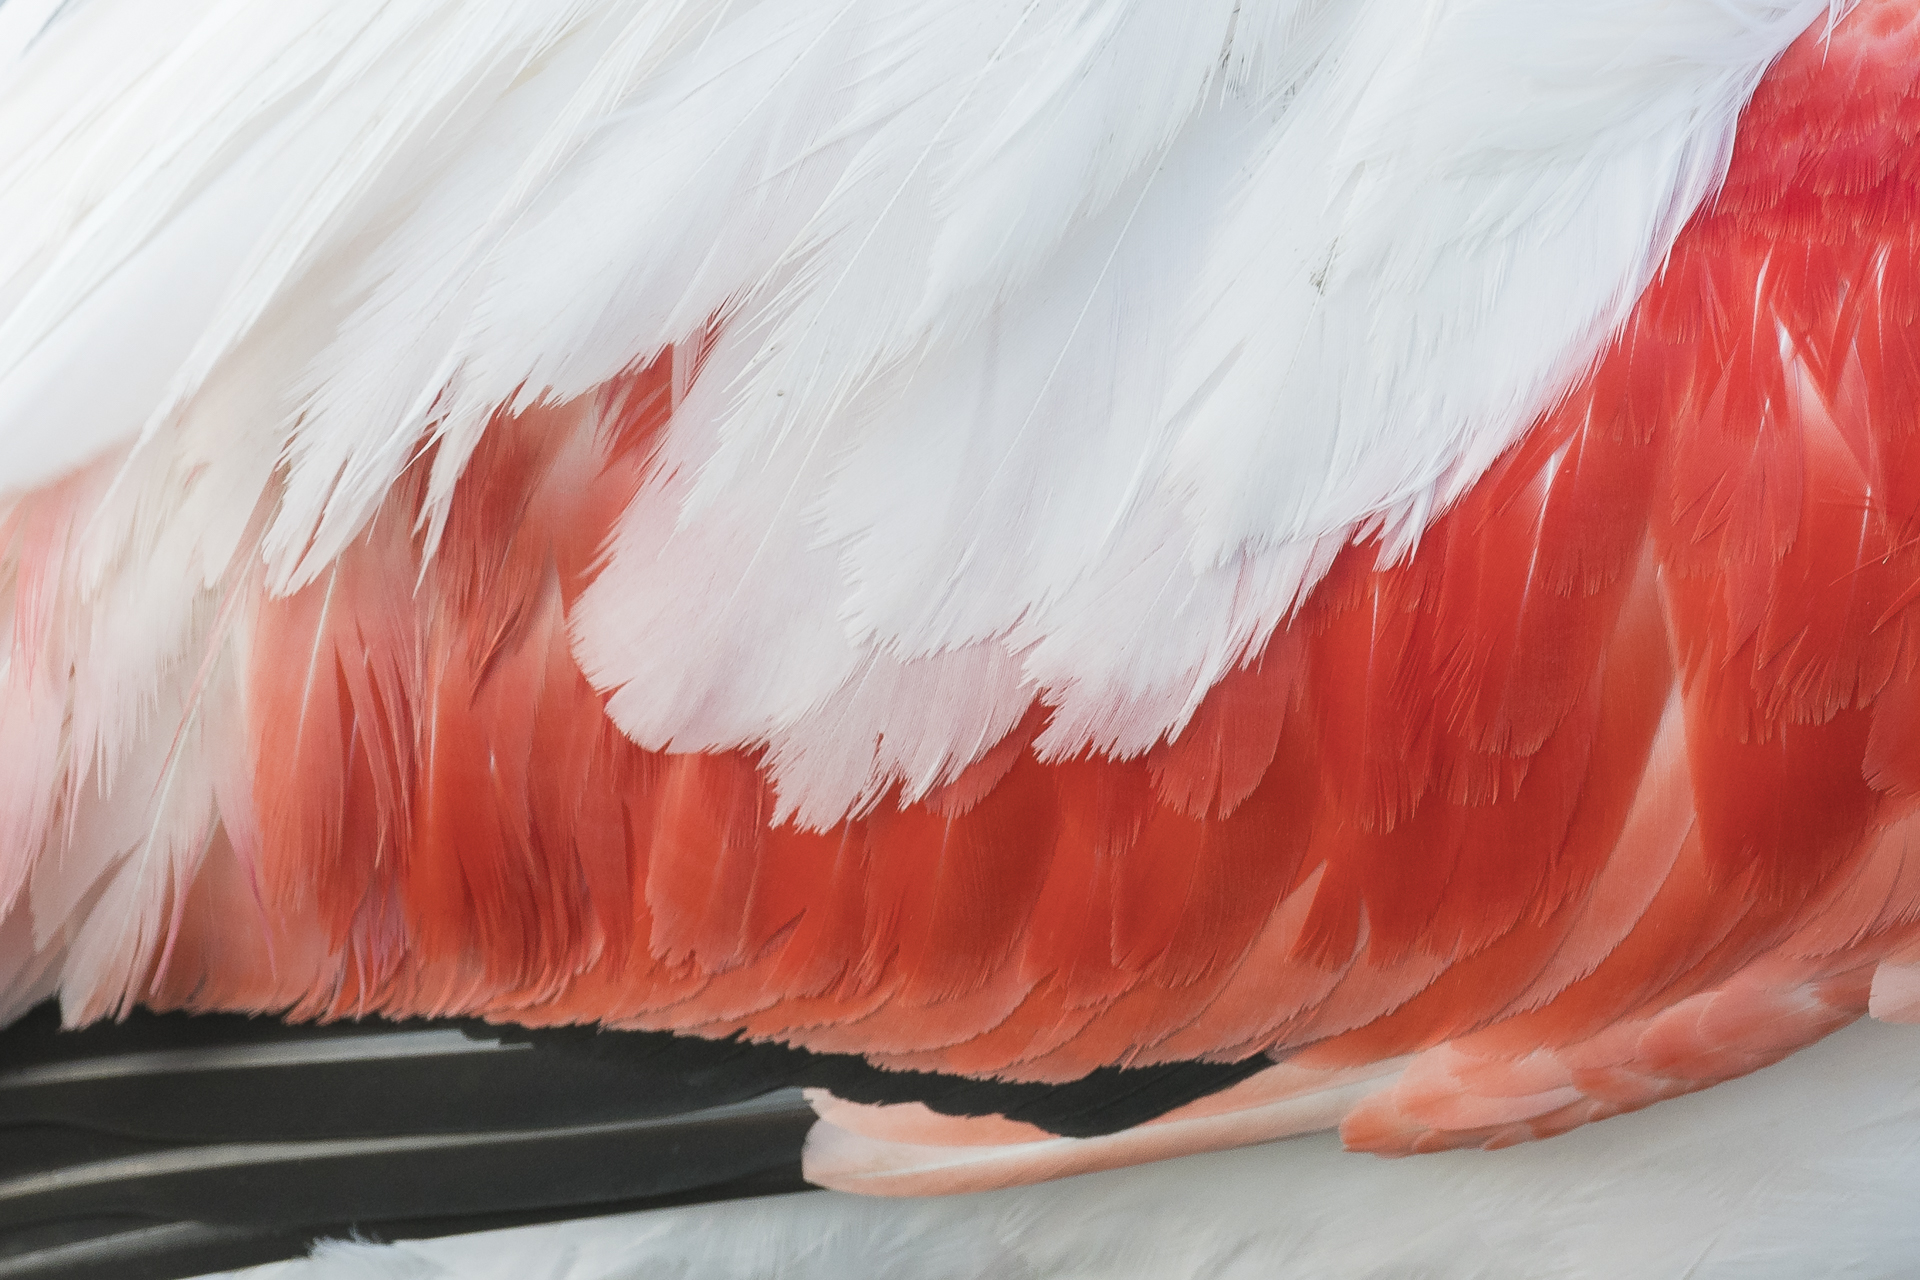 Detail of greater flamingo wing. Pont-de Gau ornithological reserve, Saintes Maries de la Mer, France.